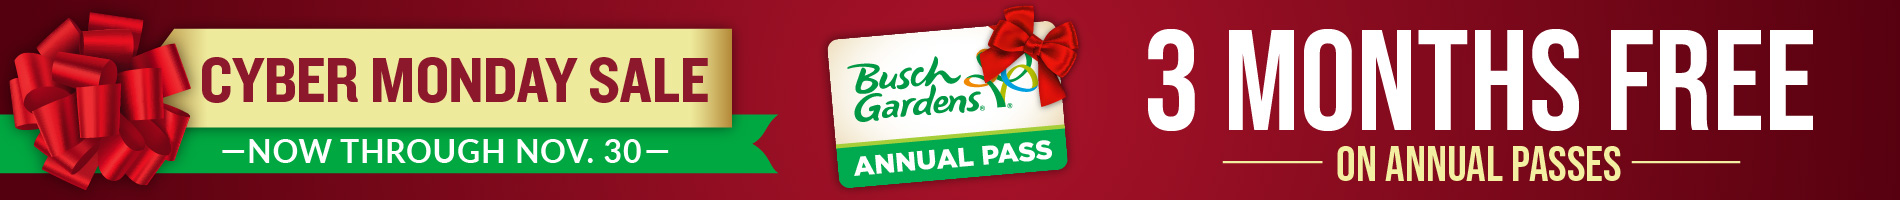 Cyber Monday 3 Months Free on Annual Passes